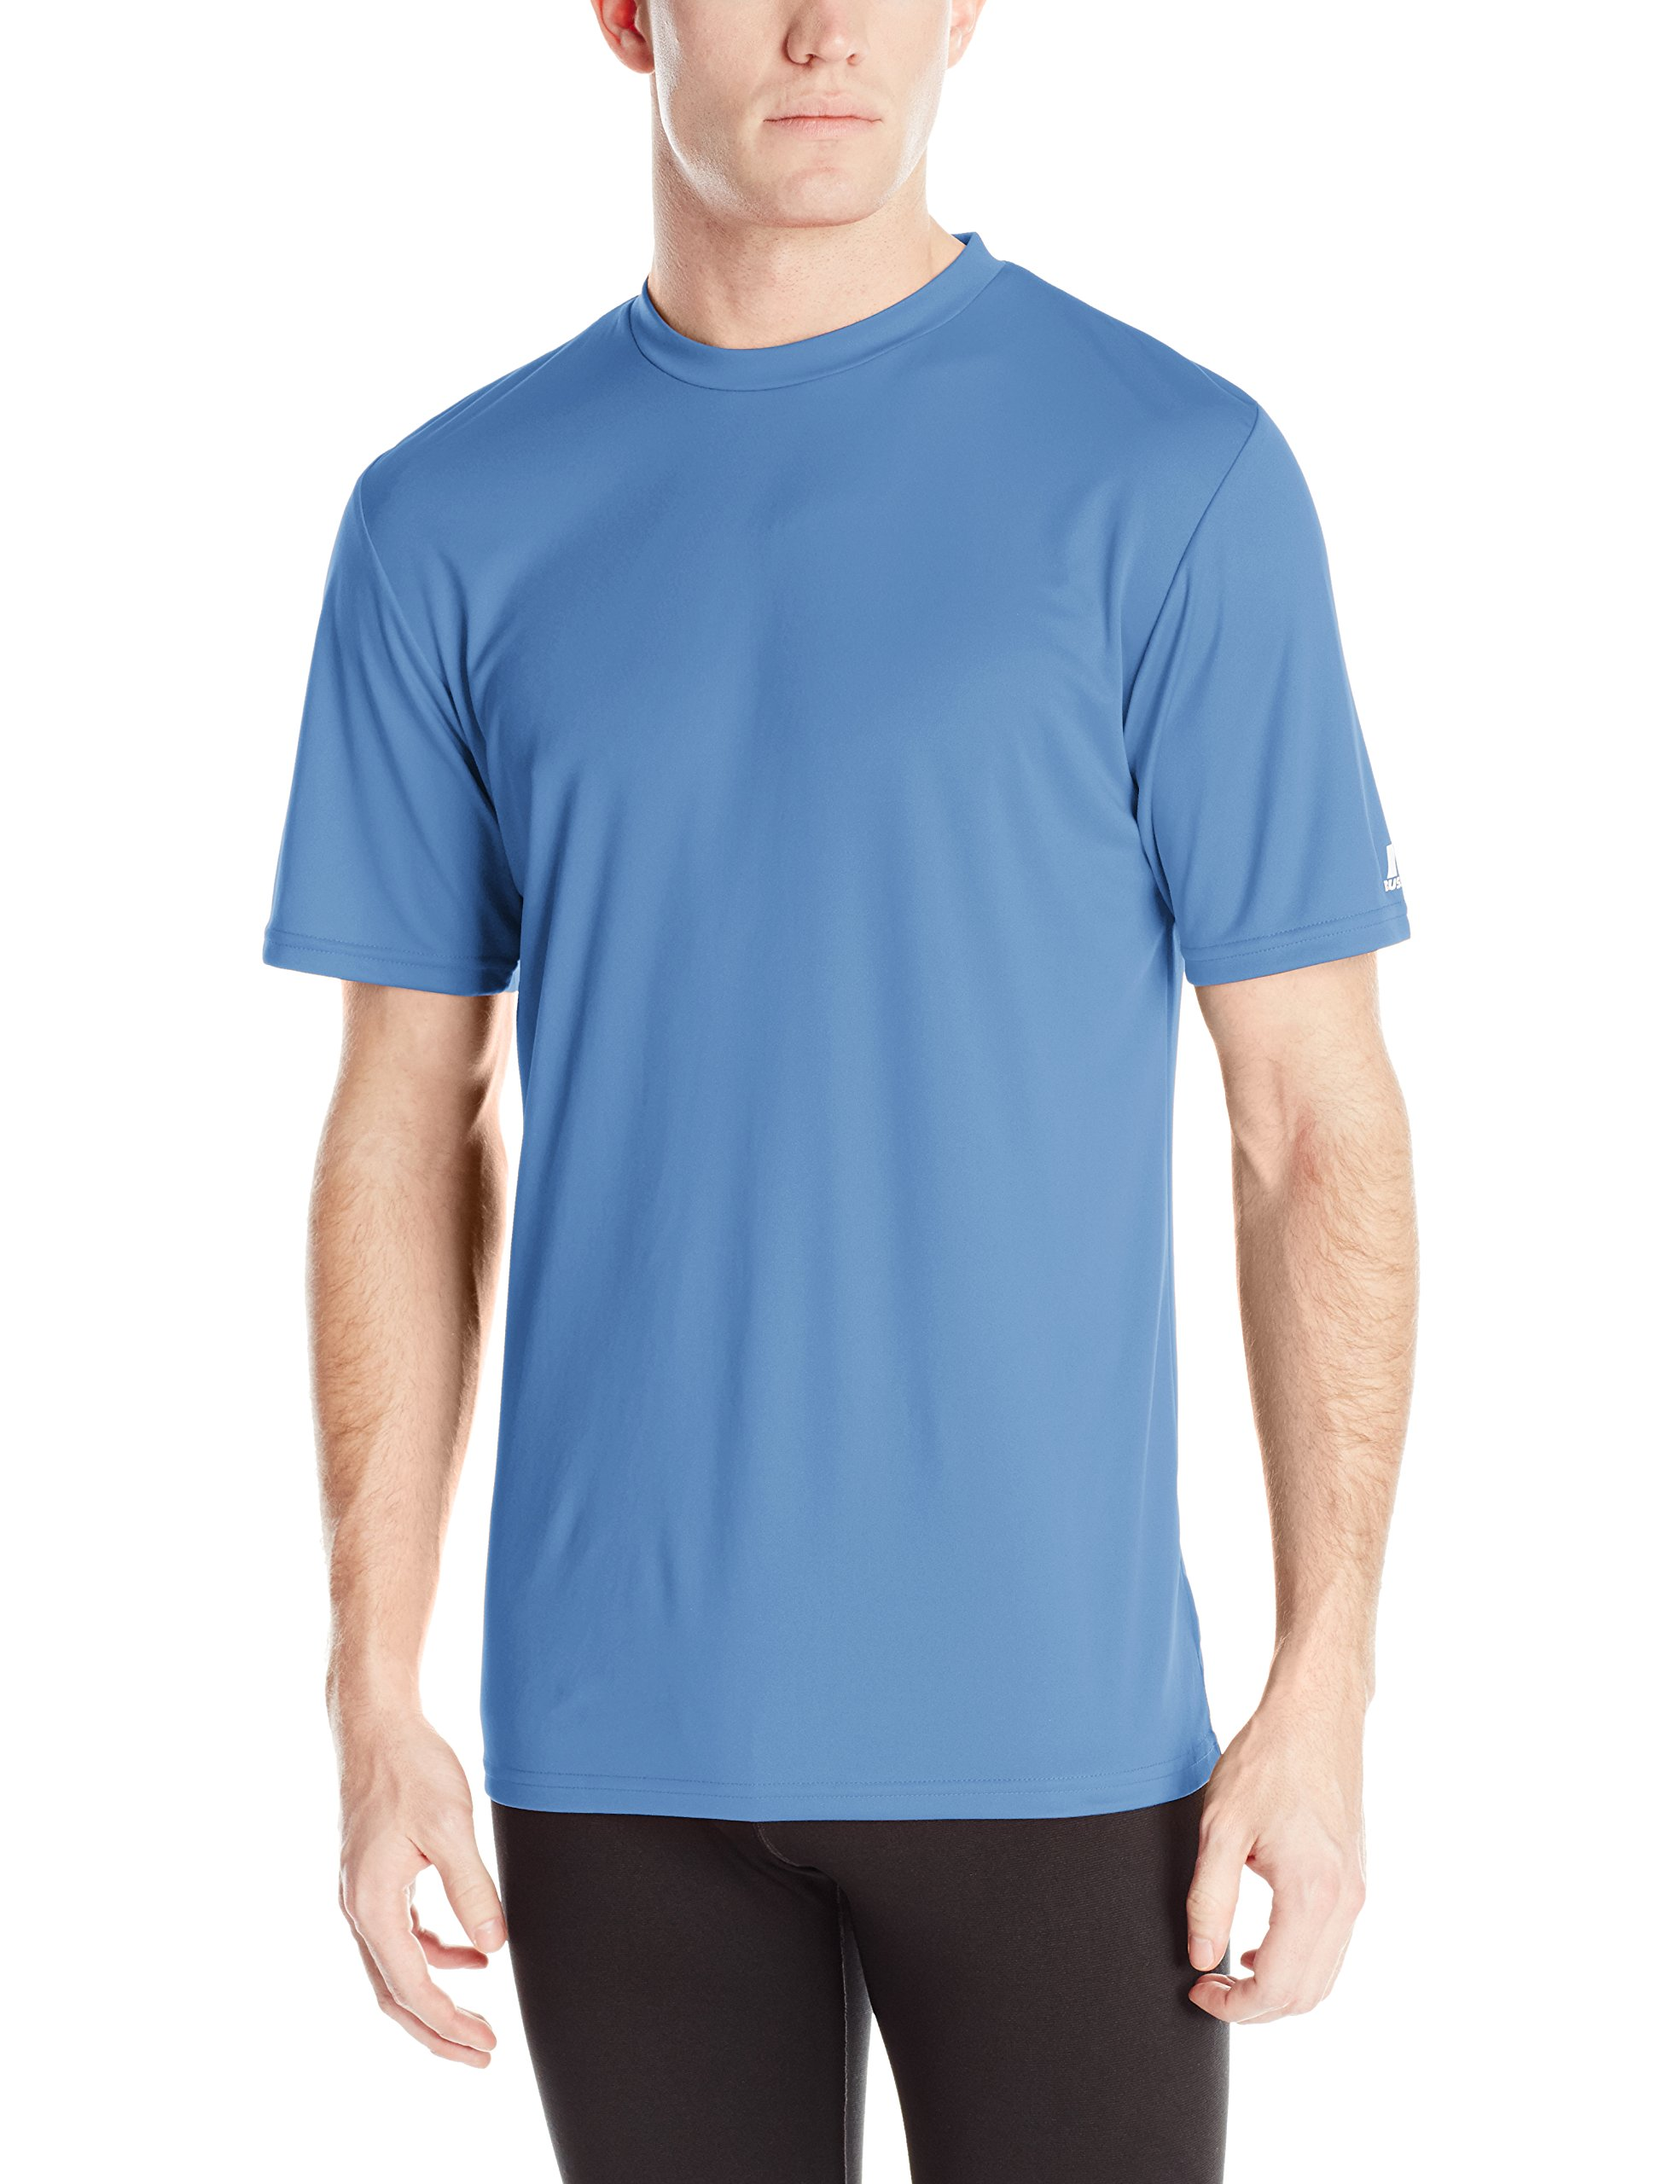 Russell Athletic Men's Performance T-Shirt, Cold Blue, Large